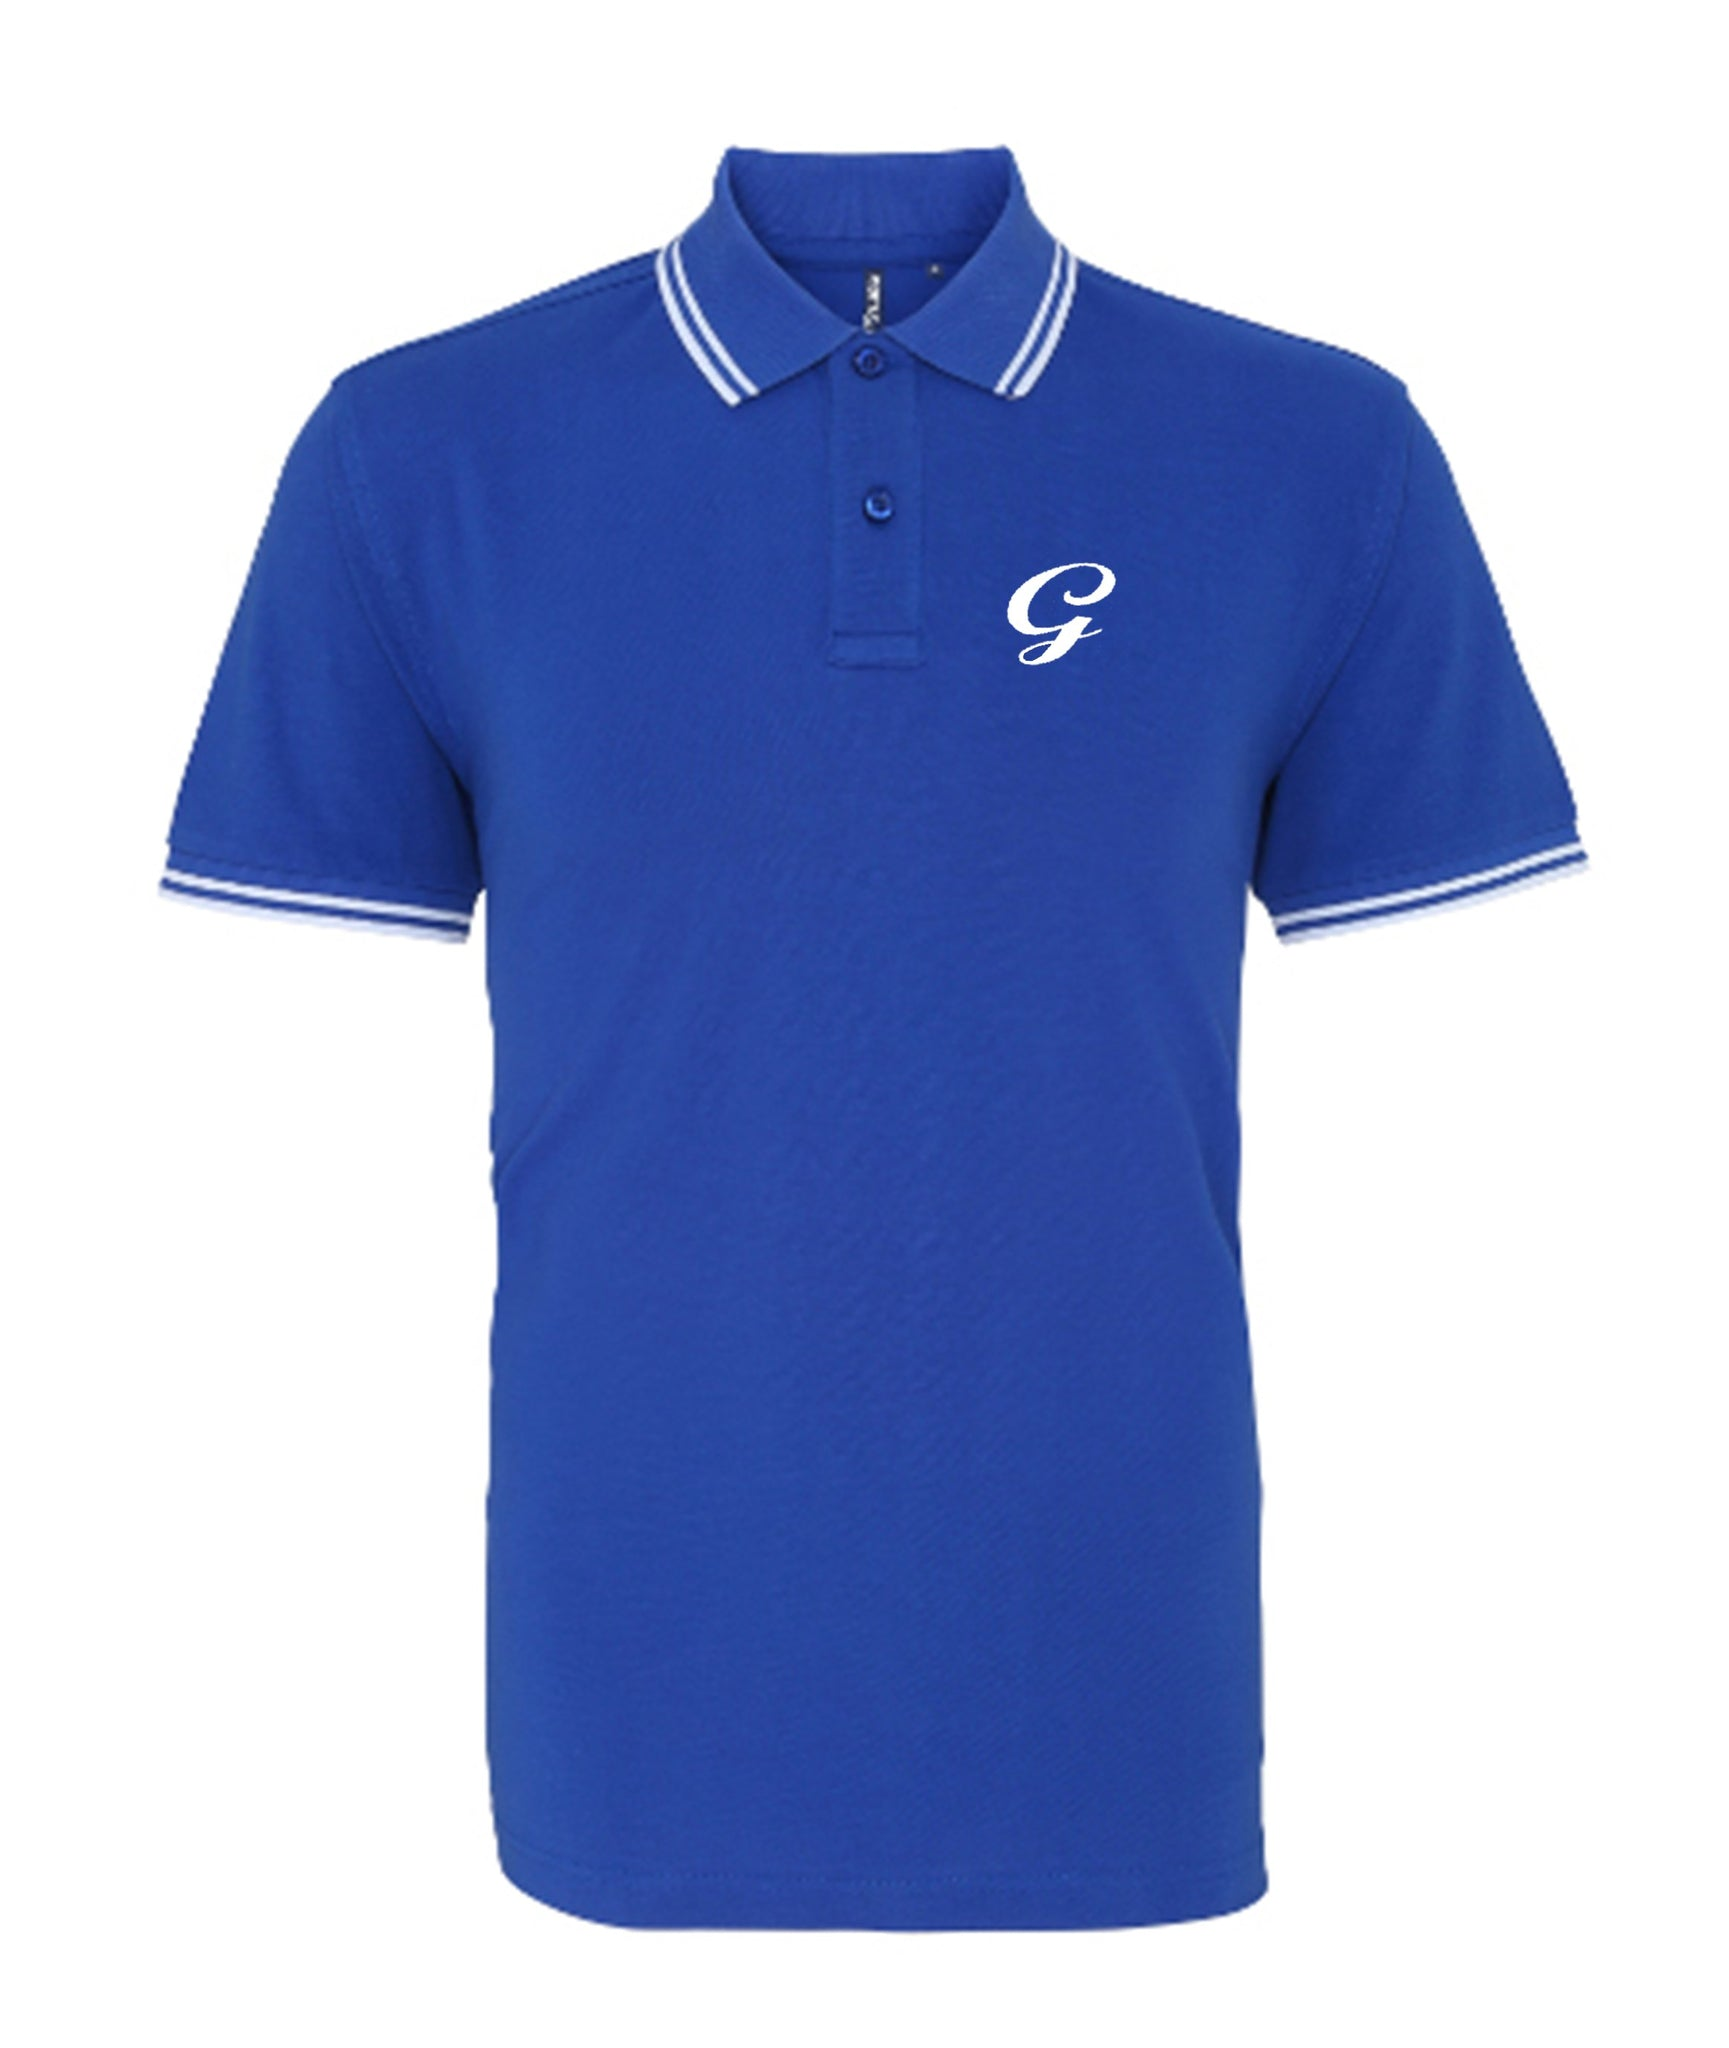 Gillingham Retro Football Iconic Polo 1972-1974 - Polo